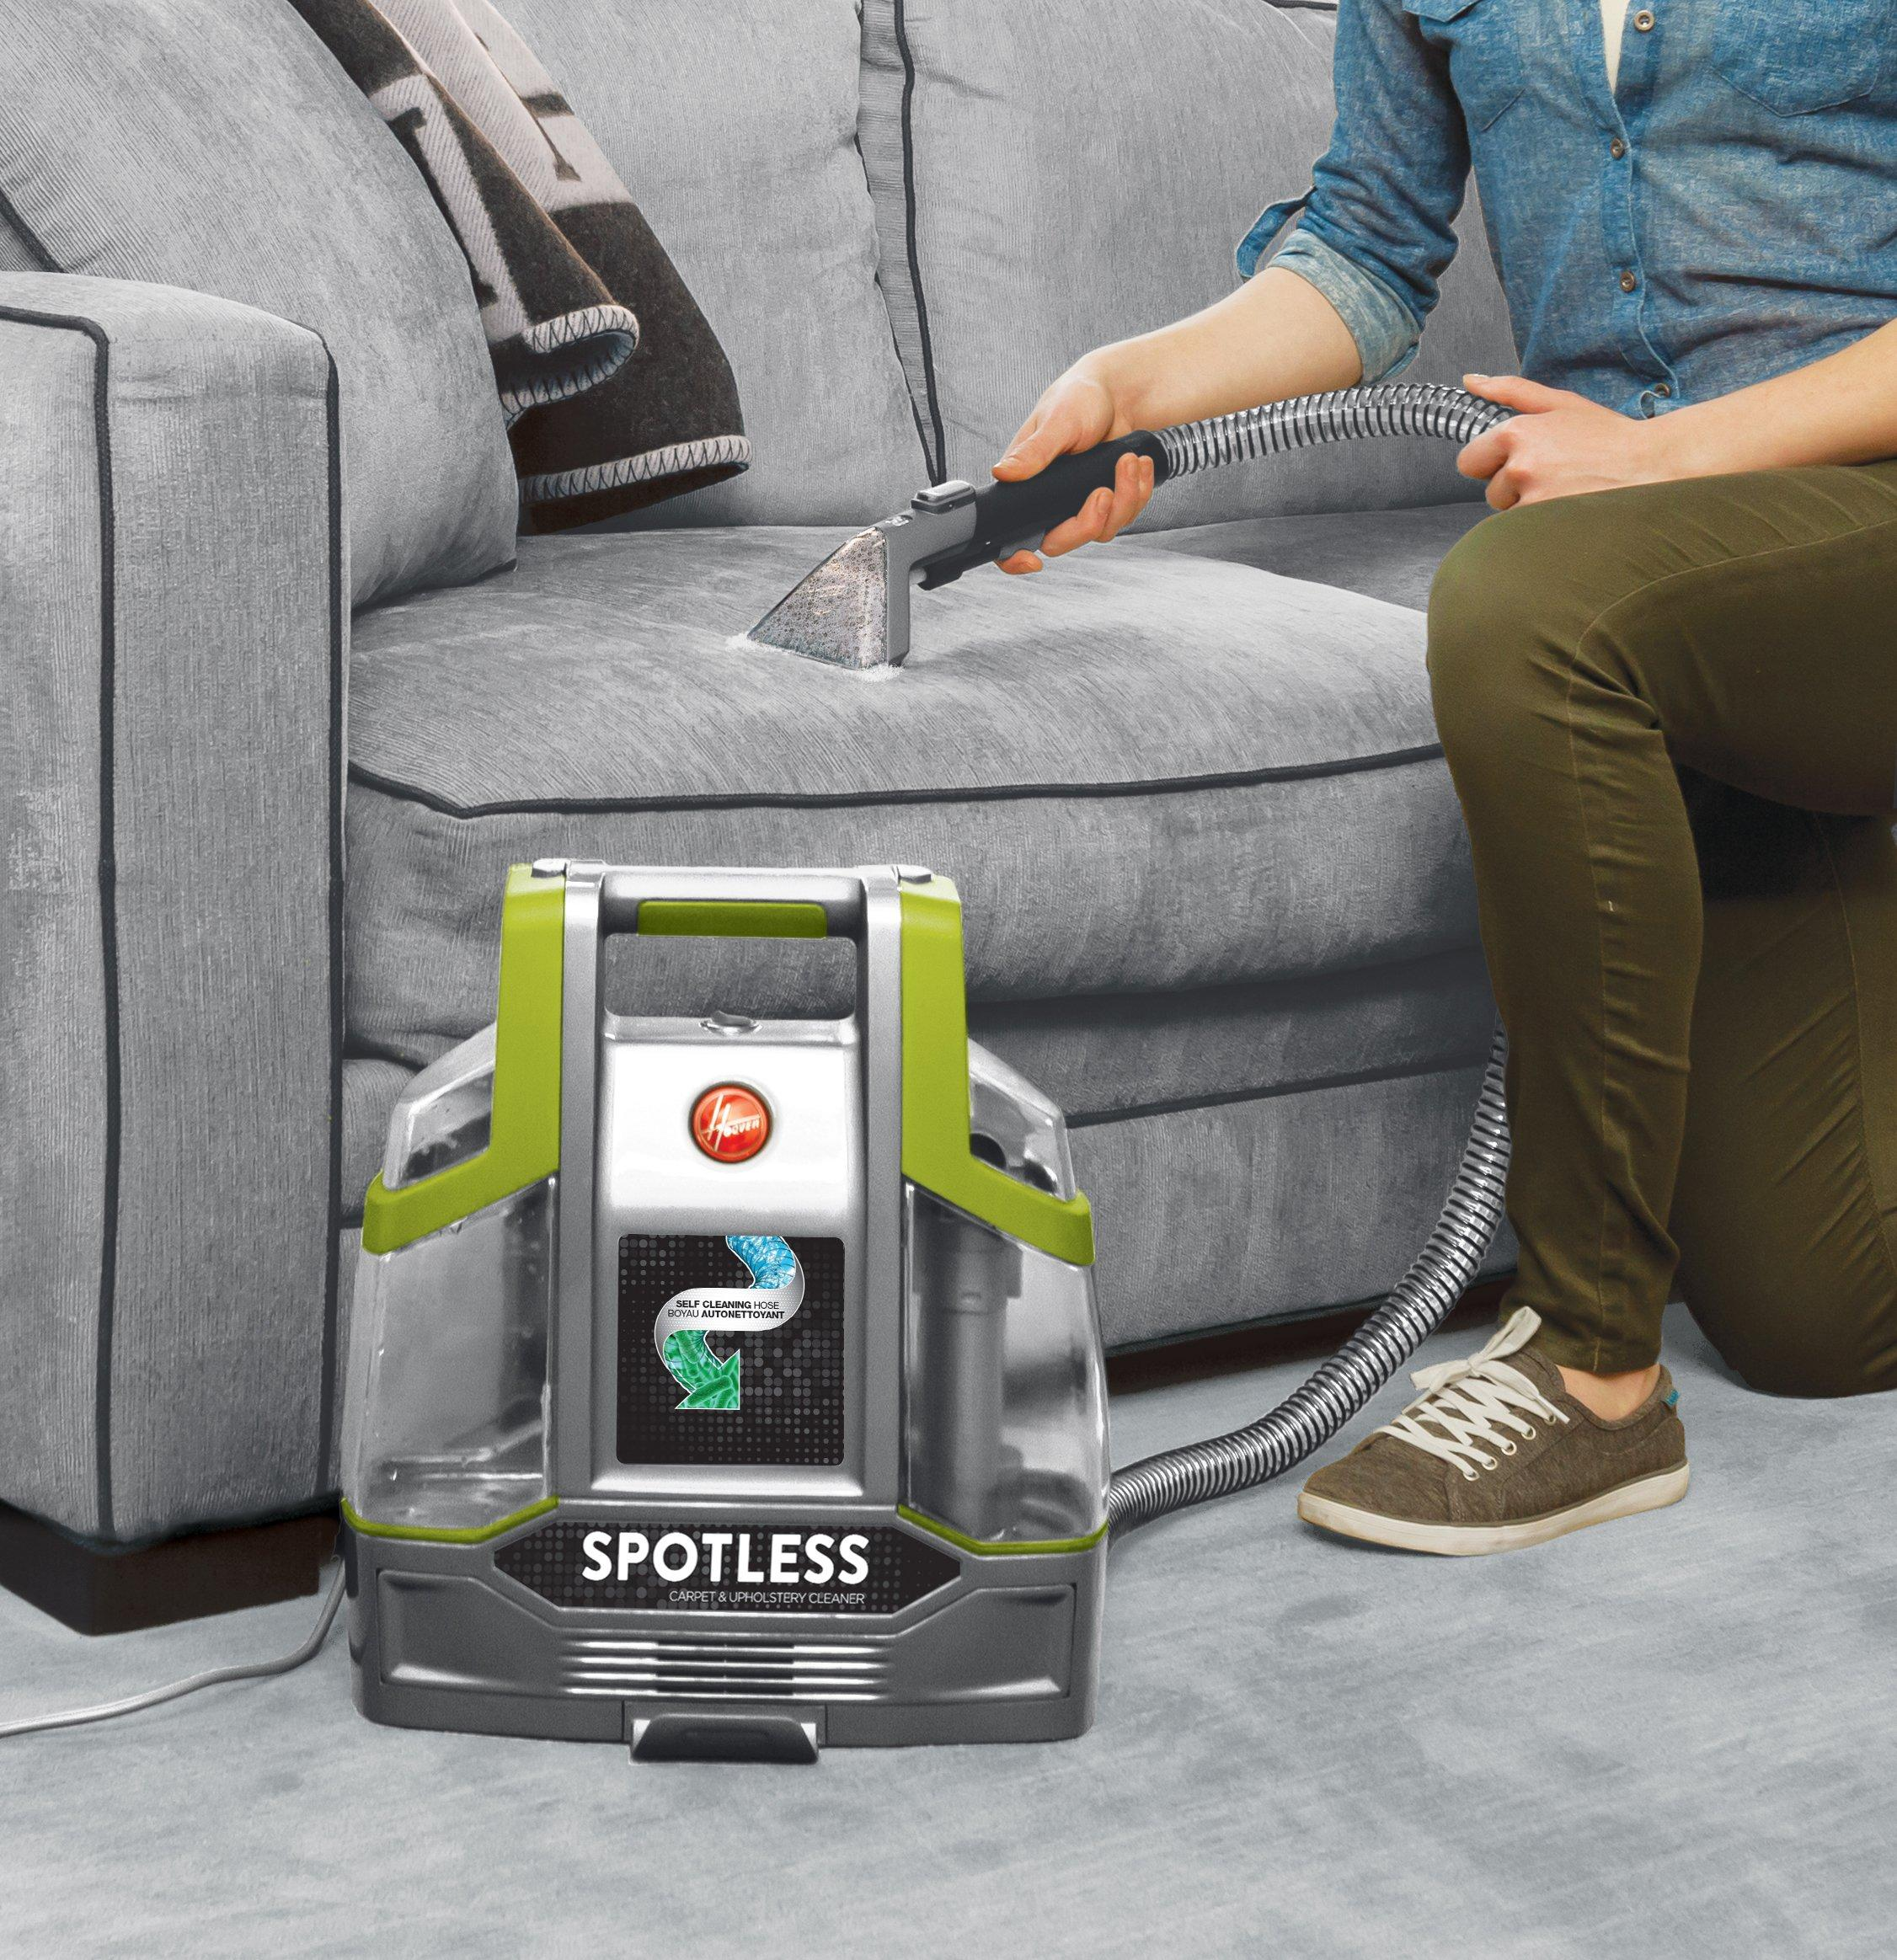 Hoover Spotless Pet Portable Carpet & Upholstery Cleaner